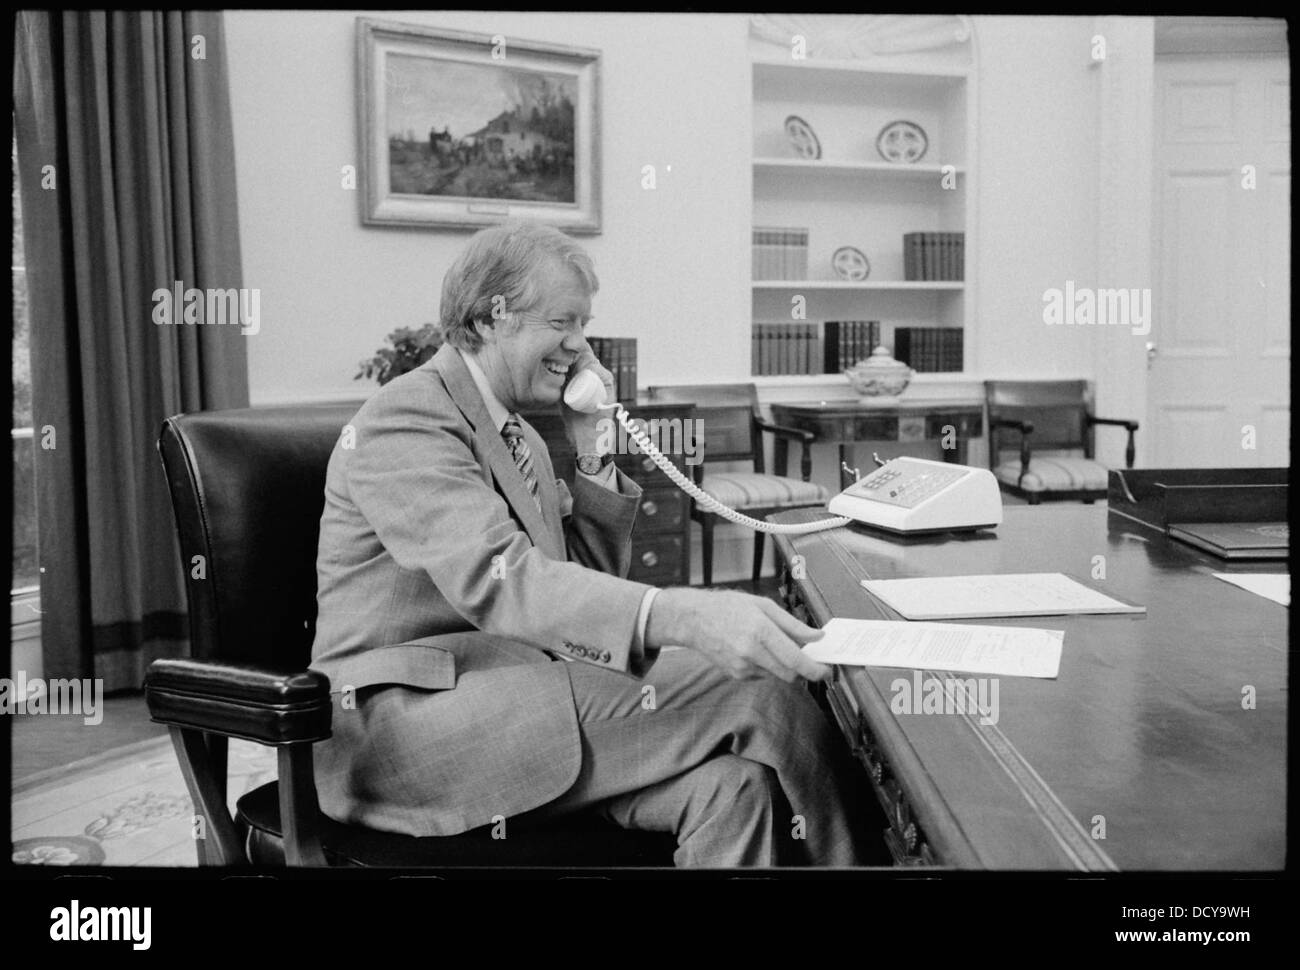 Jimmy carter oval office Dwight Eisenhower Jimmy Carter At His Desk In The Oval Office 175967 Alamy Jimmy Carter At His Desk In The Oval Office 175967 Stock Photo